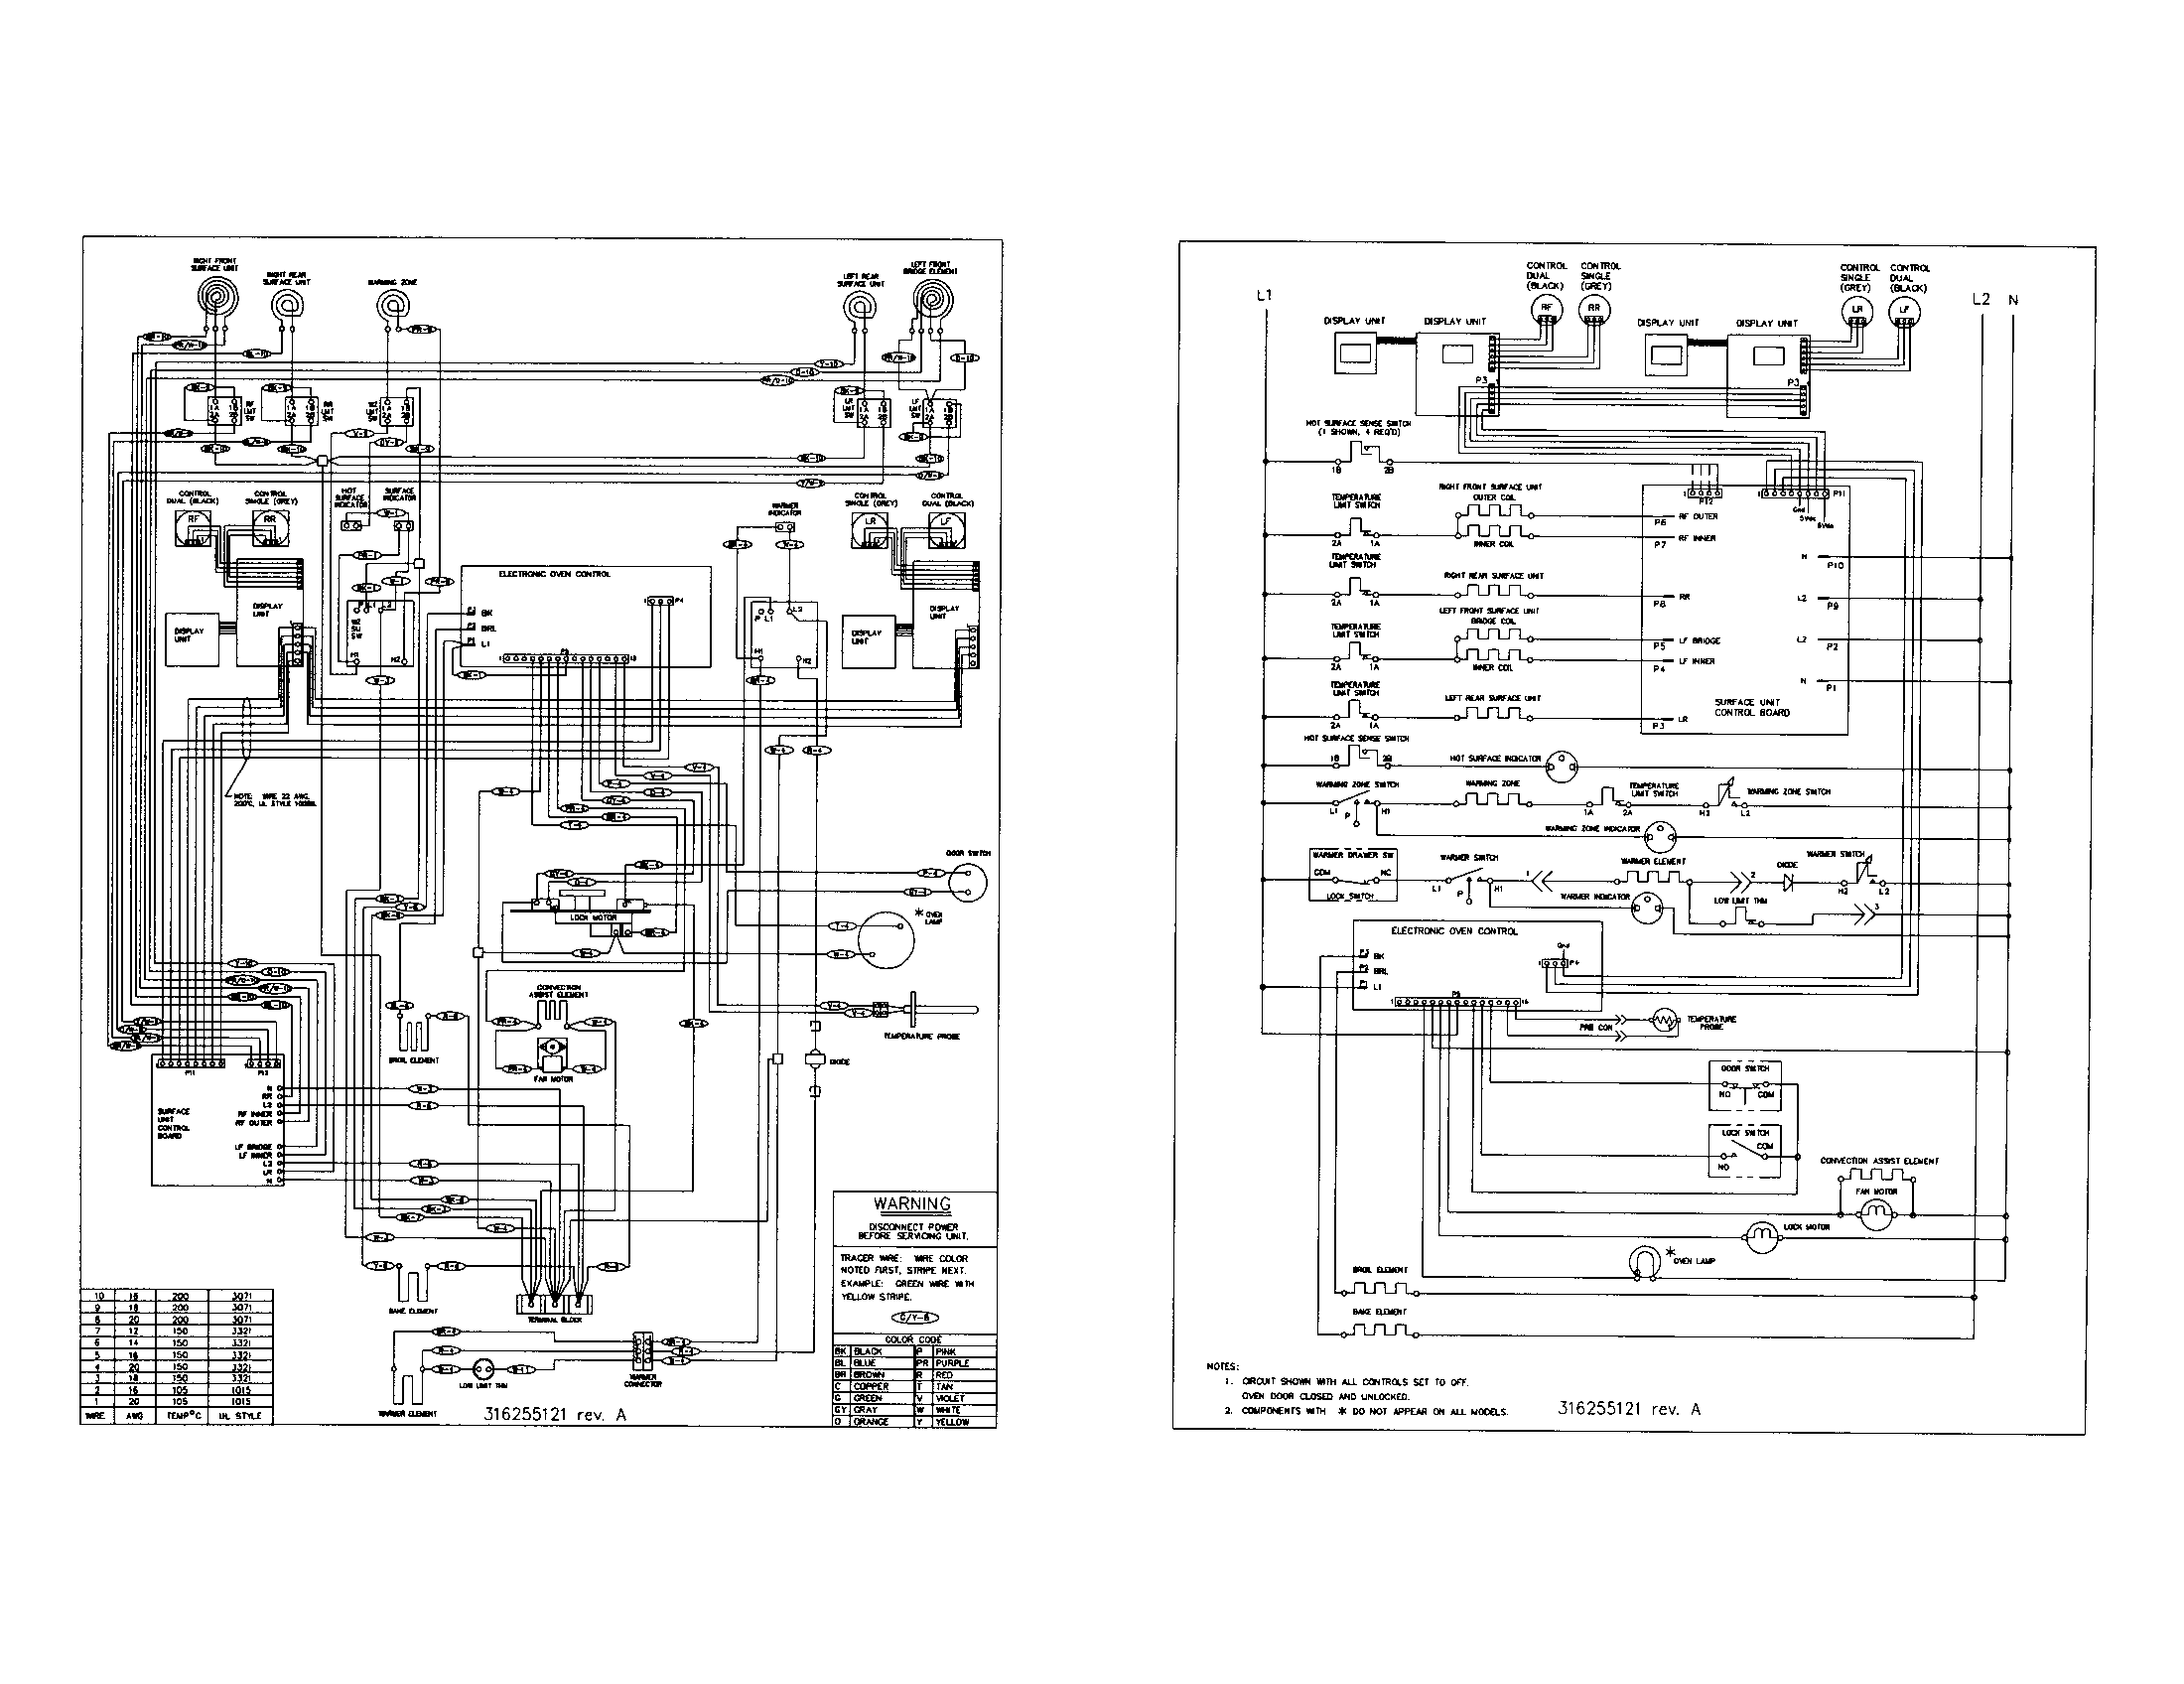 Hobart Lxi Wiring Diagram : 25 Wiring Diagram Images